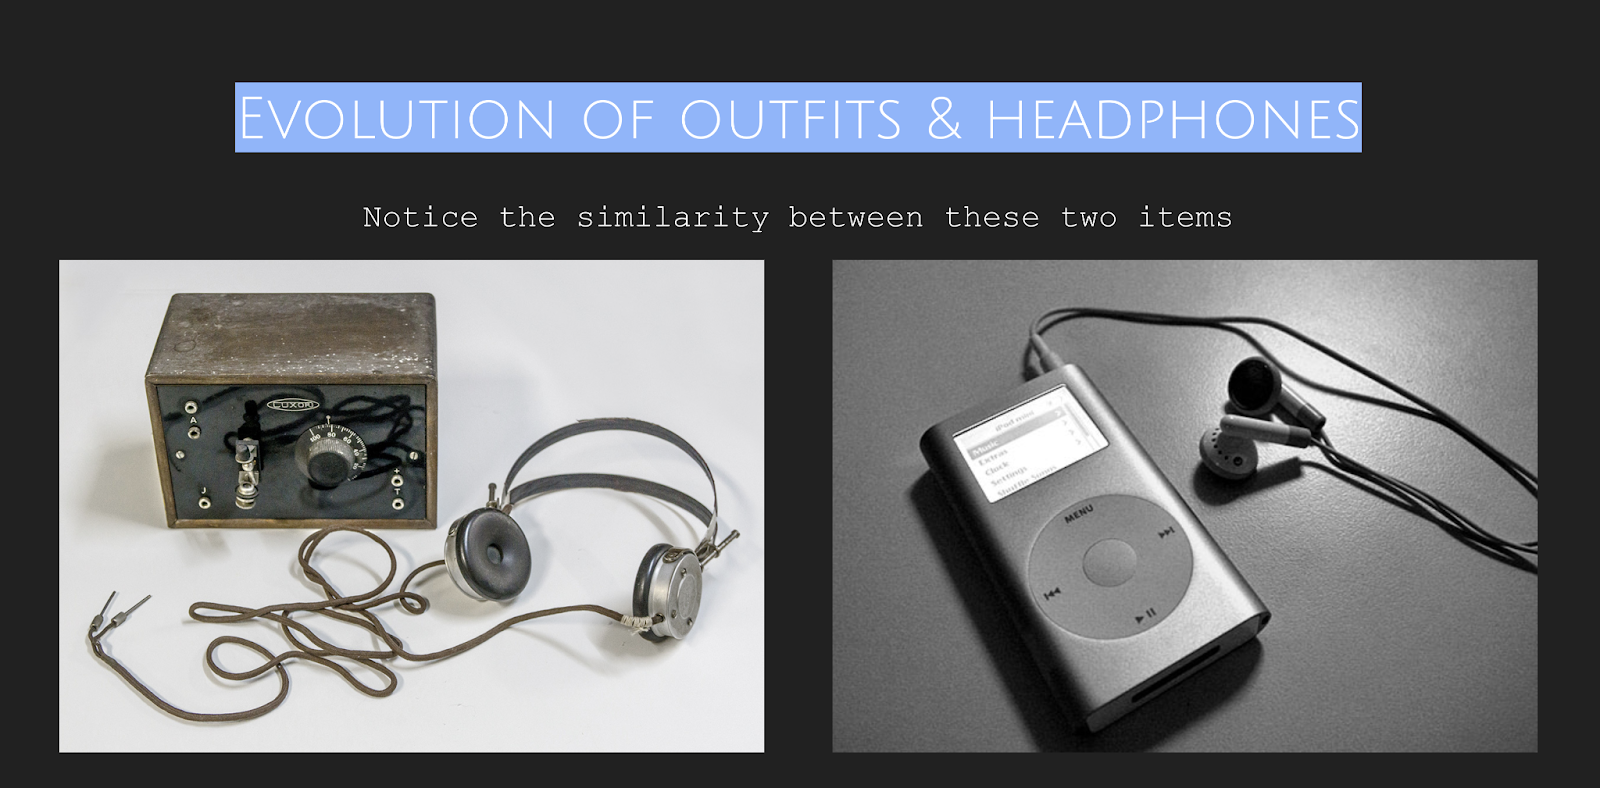 A slide which compares two different photographs of headphones connected to a music playback device -- one is a 1920s radio and the other is an ipod from the early 2000s.